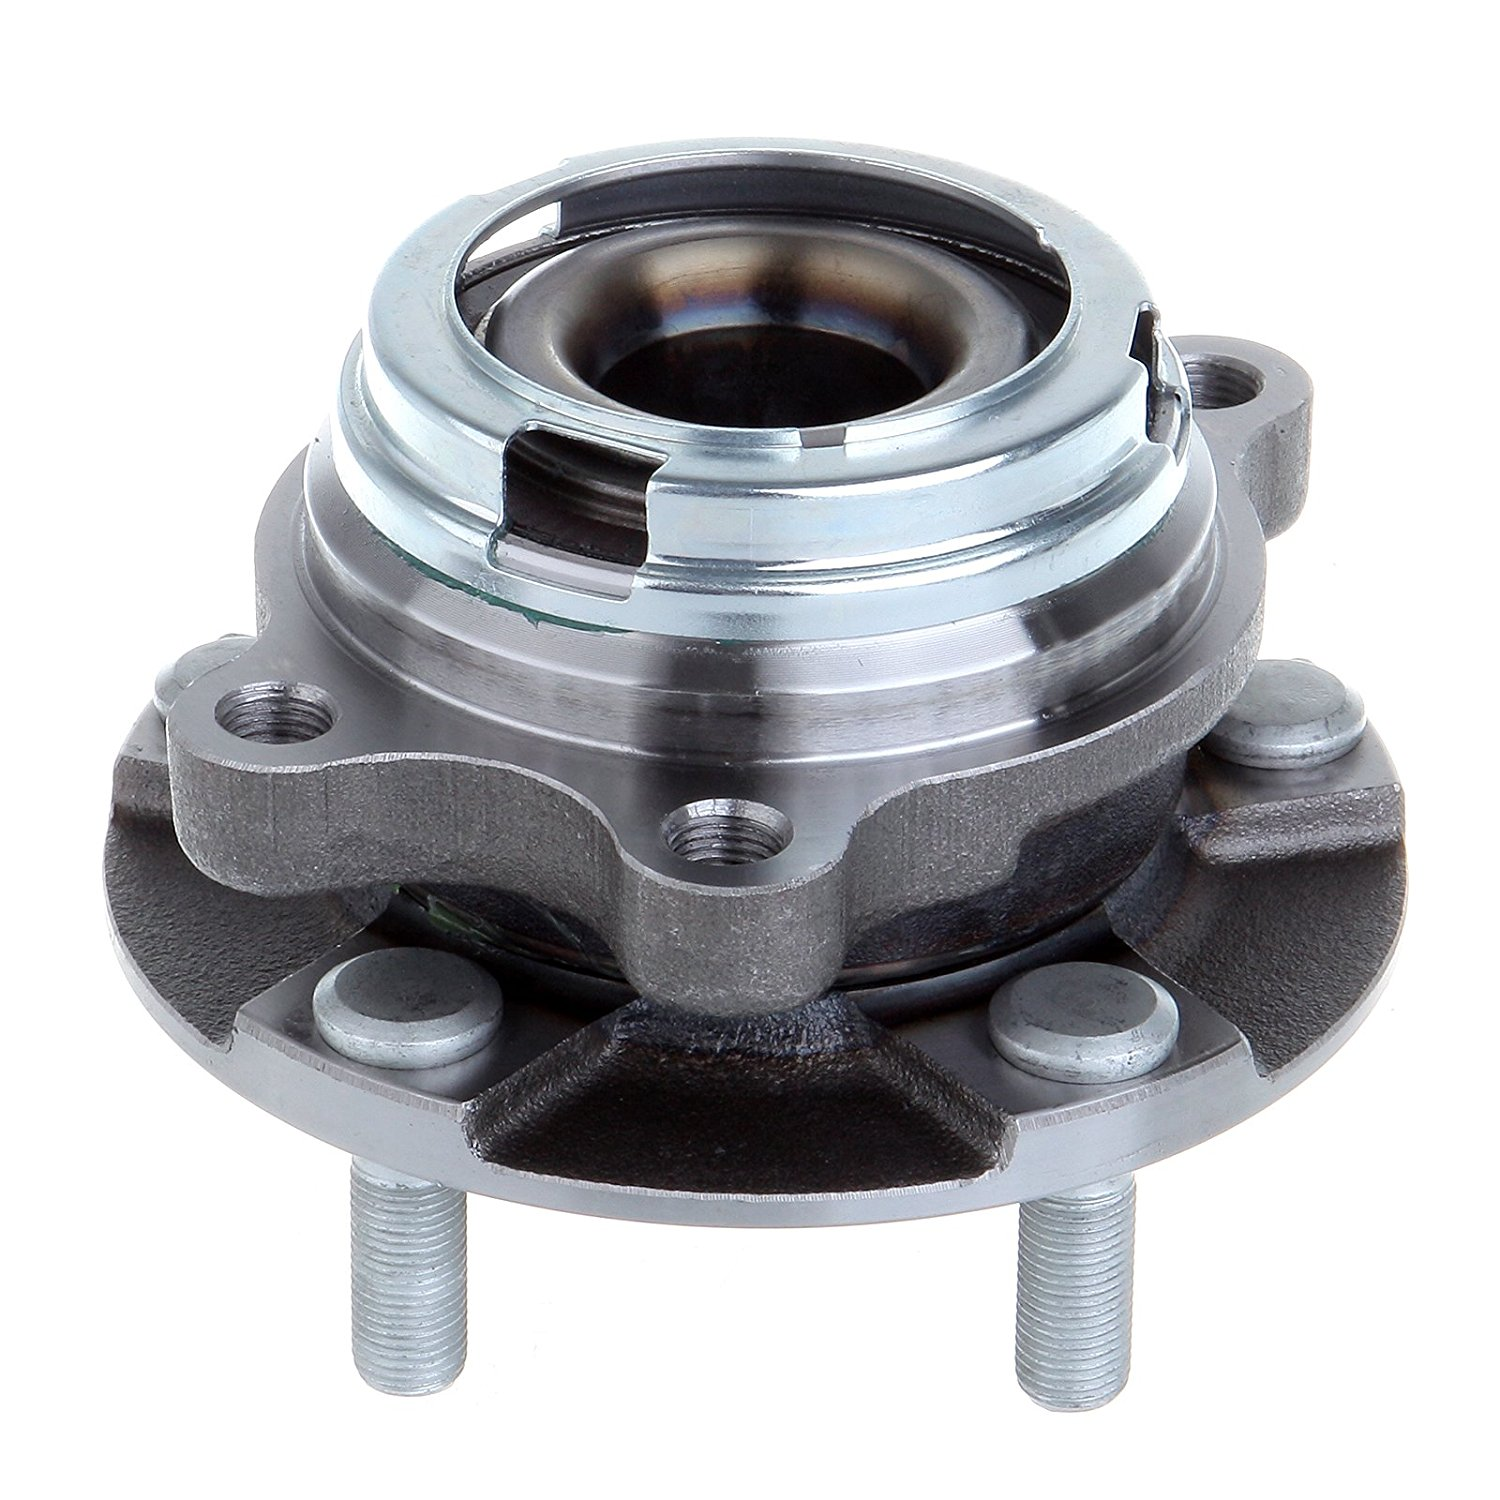 ECCPP New Front Wheel Hub Bearings for a Nissan 2003-2007 Murano 2004-2009 Quest 5 Lug